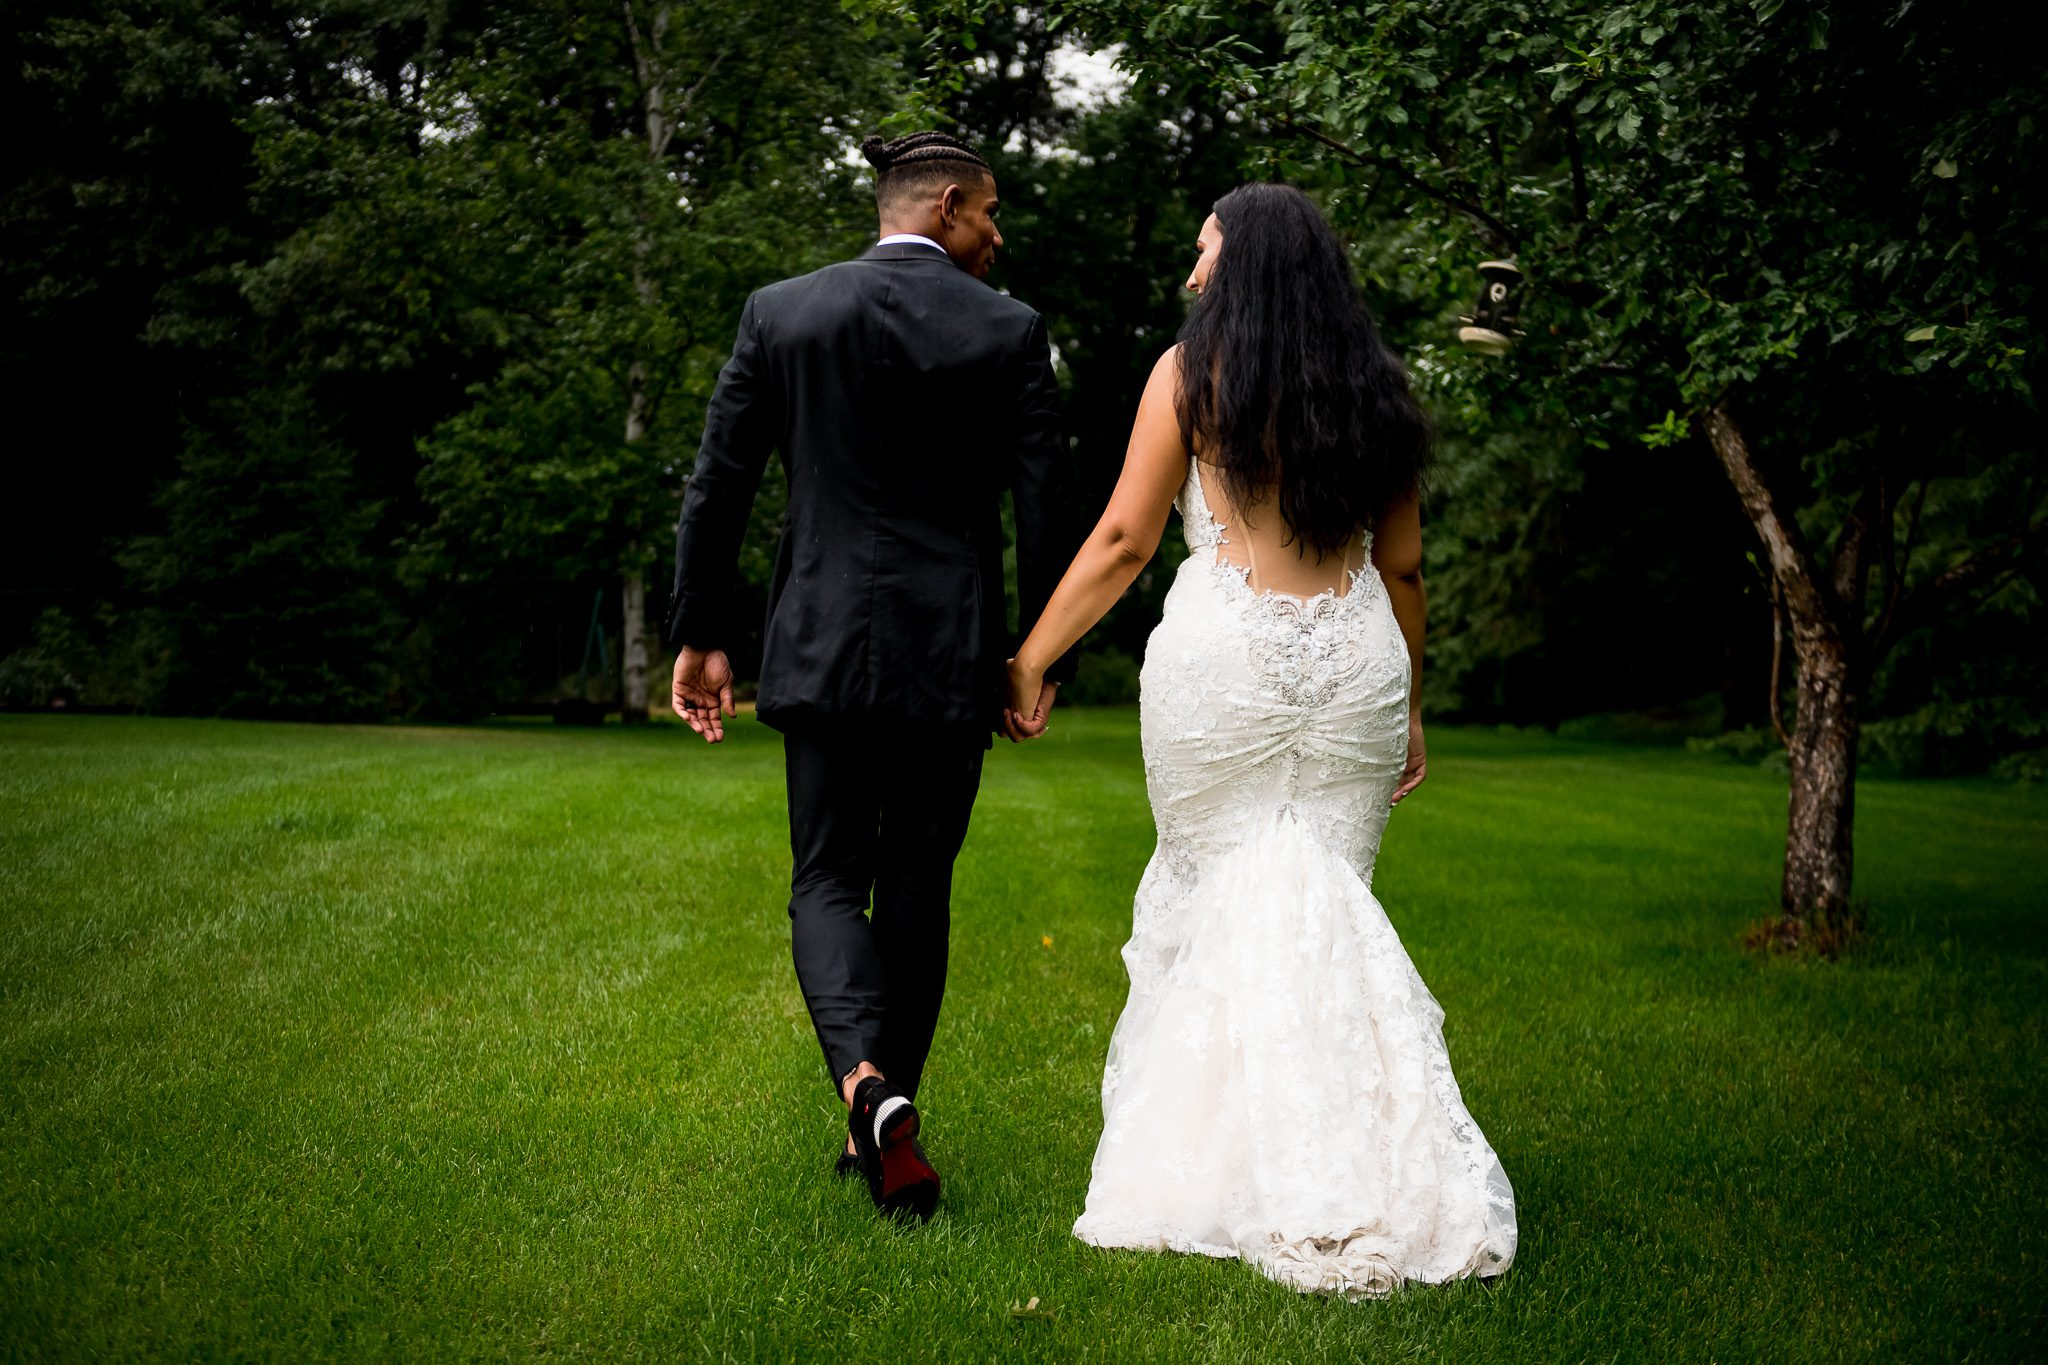 Elijah Campbell (nfl player) and his beautiful bride Anisse walking hand in hand, in the grass, under light rainfall, during their backyard wedding in Minnesota.